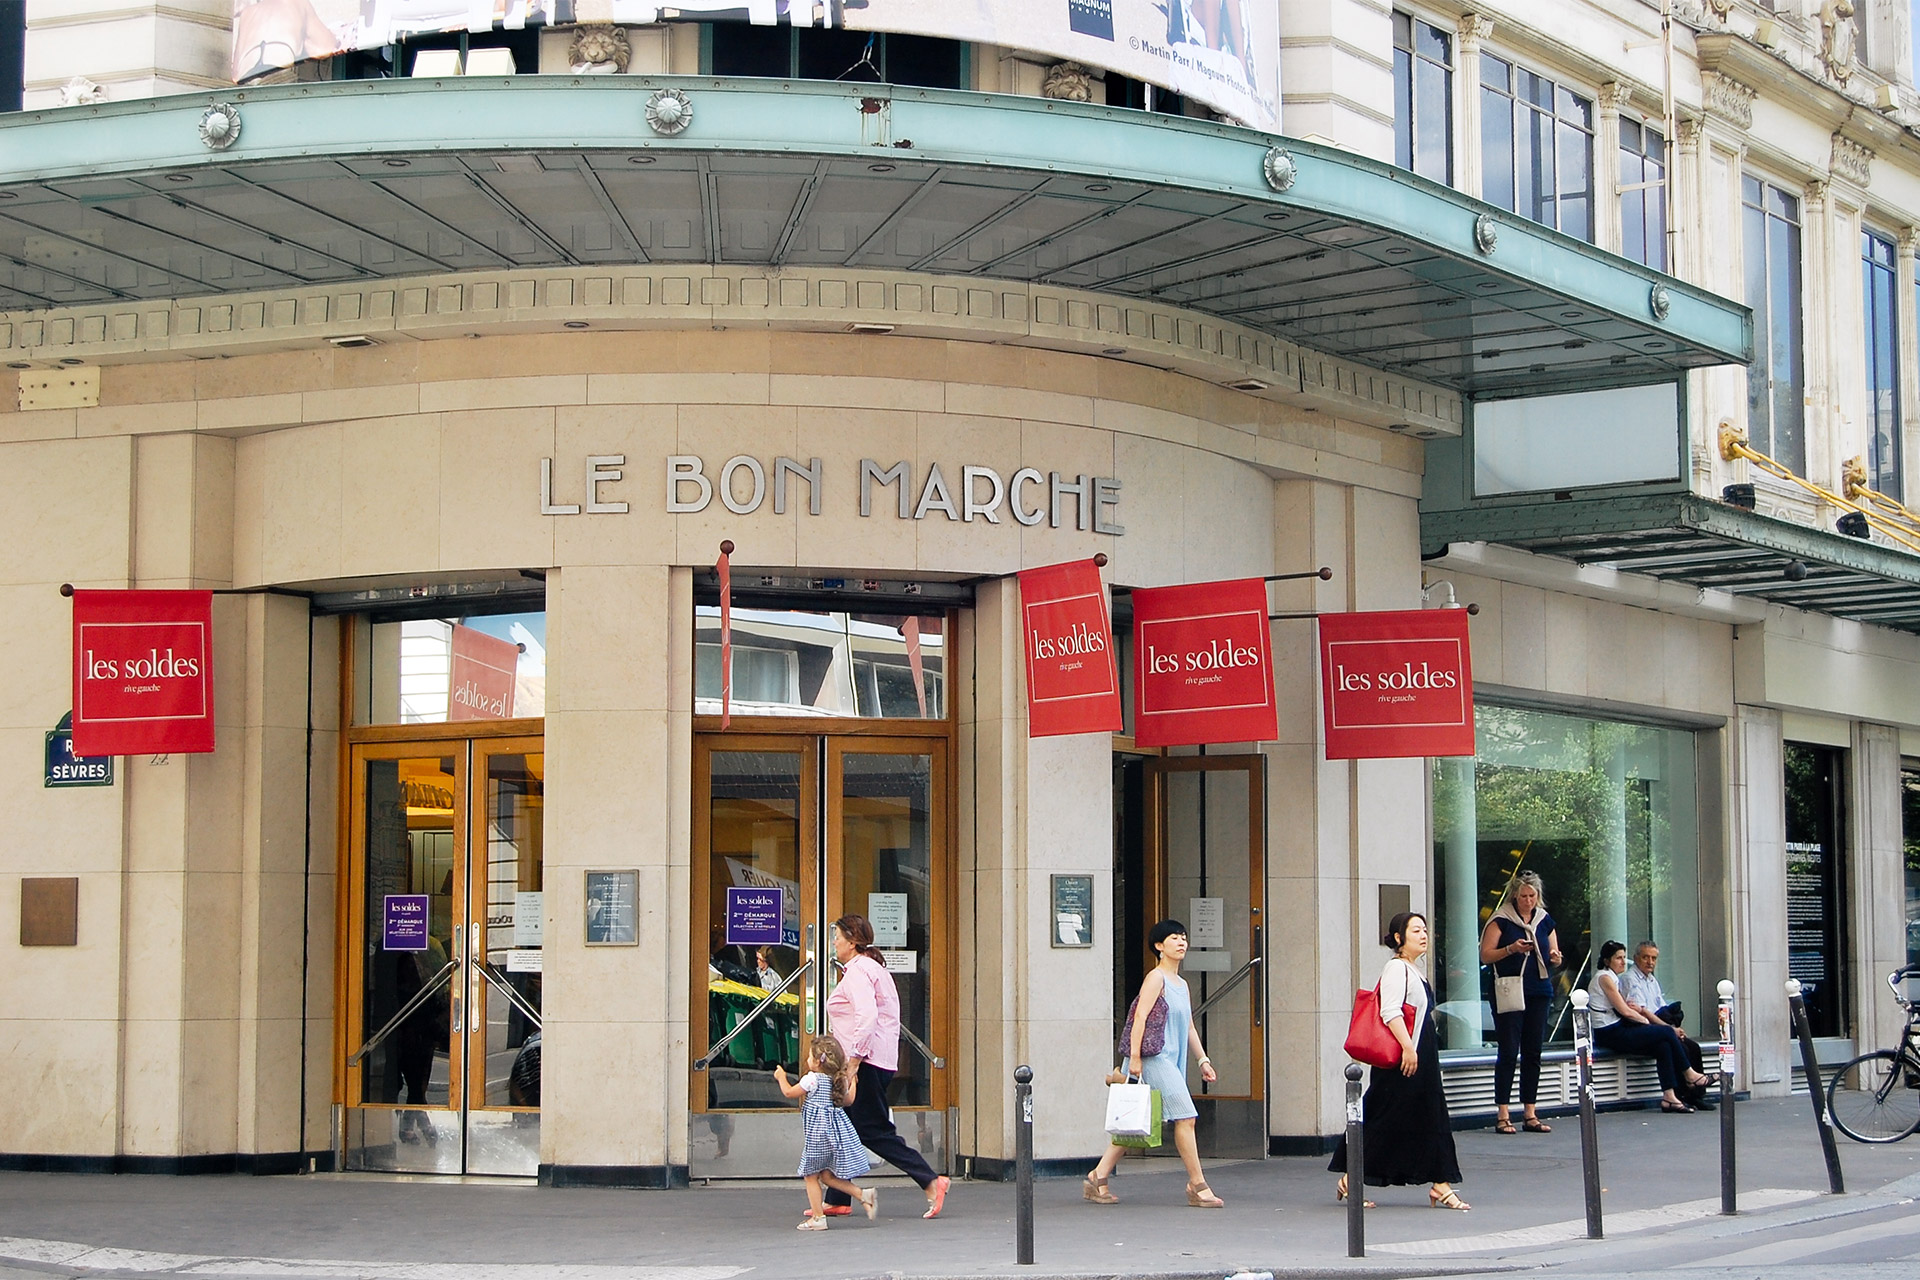 Just down the road from the iconic Le Bon Marché department store